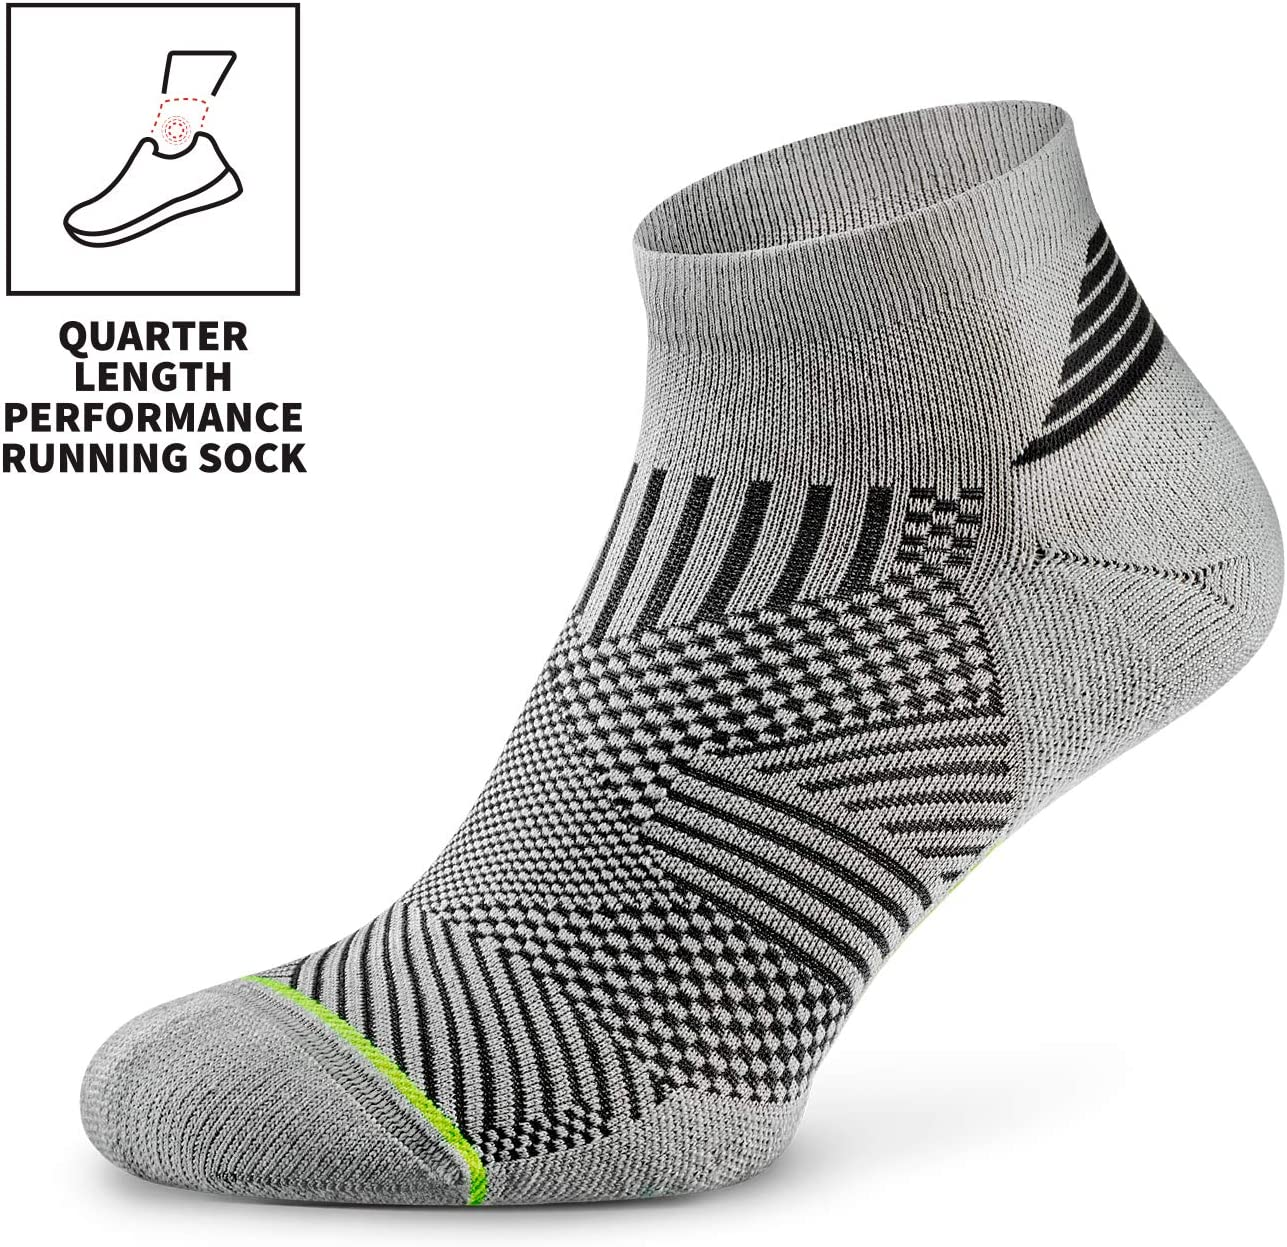 Rockay Flare Running Socks for Men and Women Anti-Odor Arch Support Cushion Quarter Cut 100/% Recycled 1 Pair